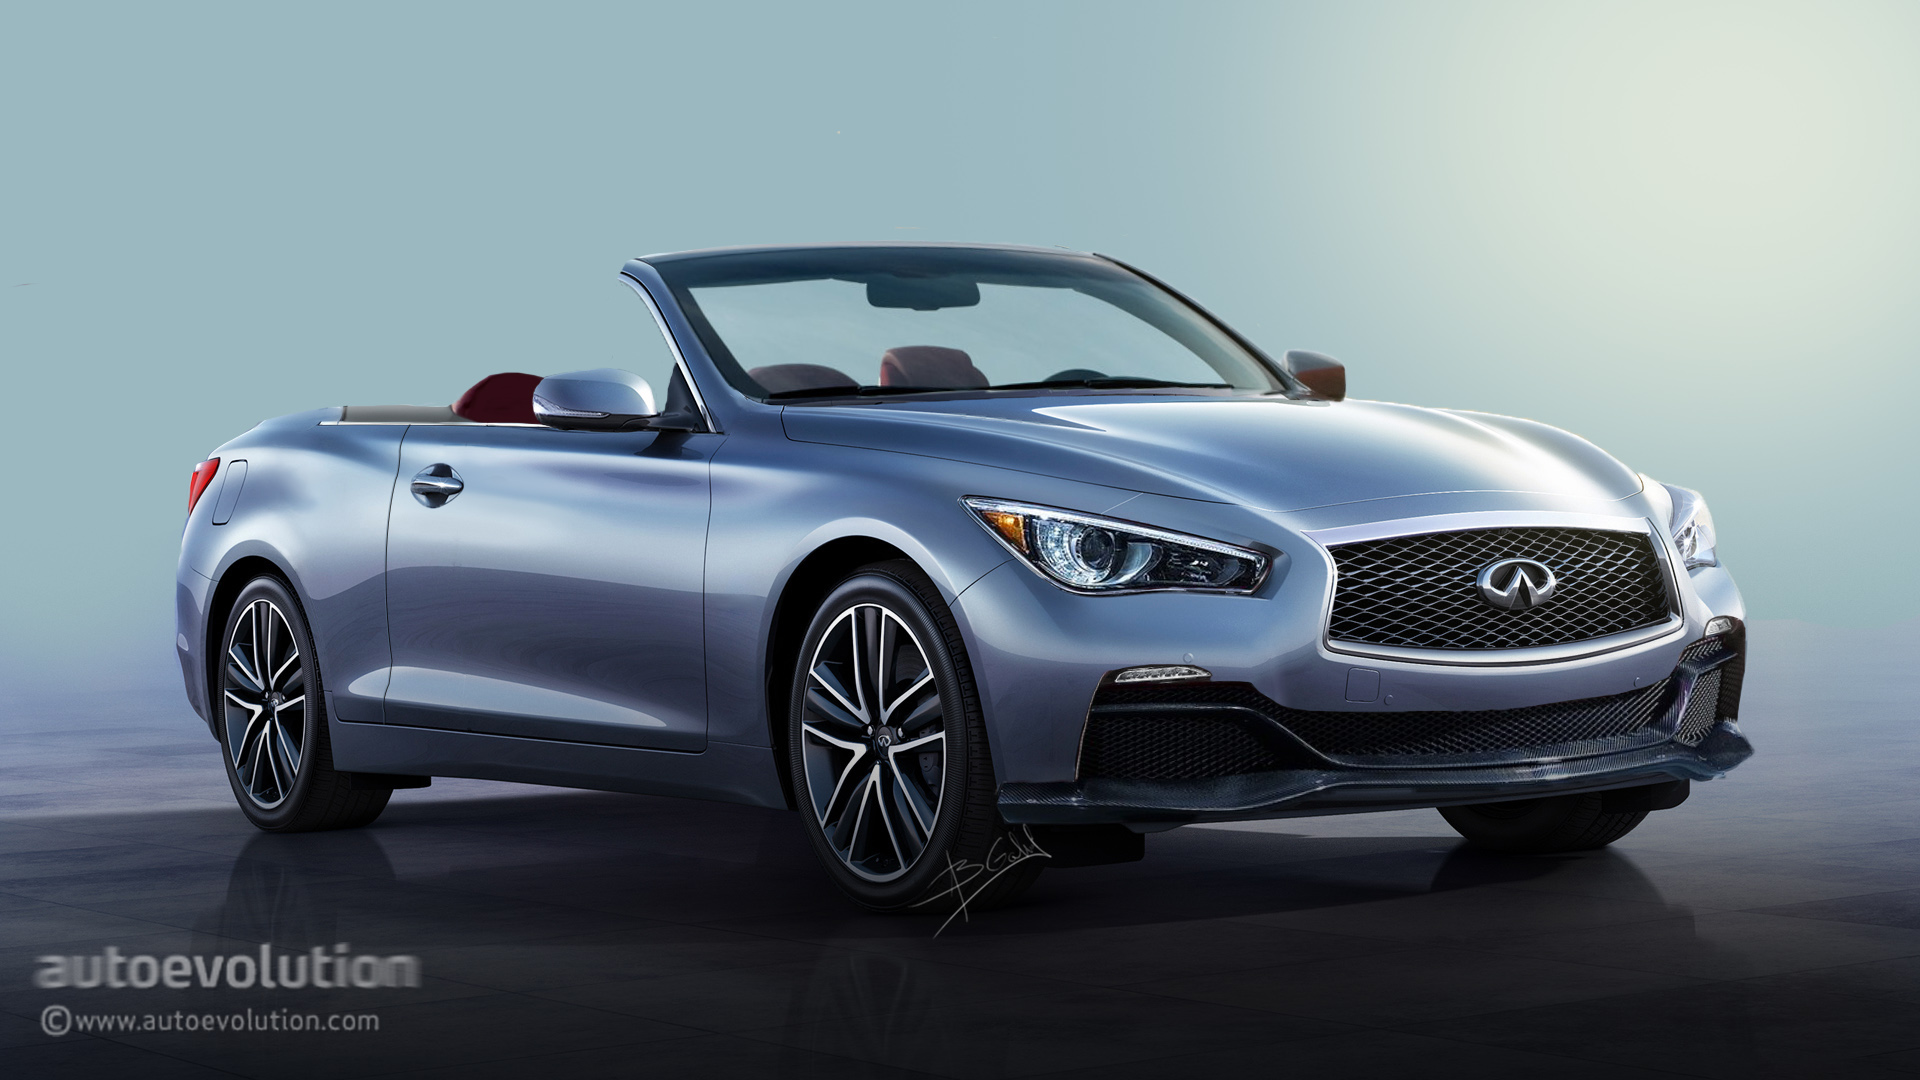 convertible ipl car images wallpapers pixel infiniti hd wide wallpaper infinity and